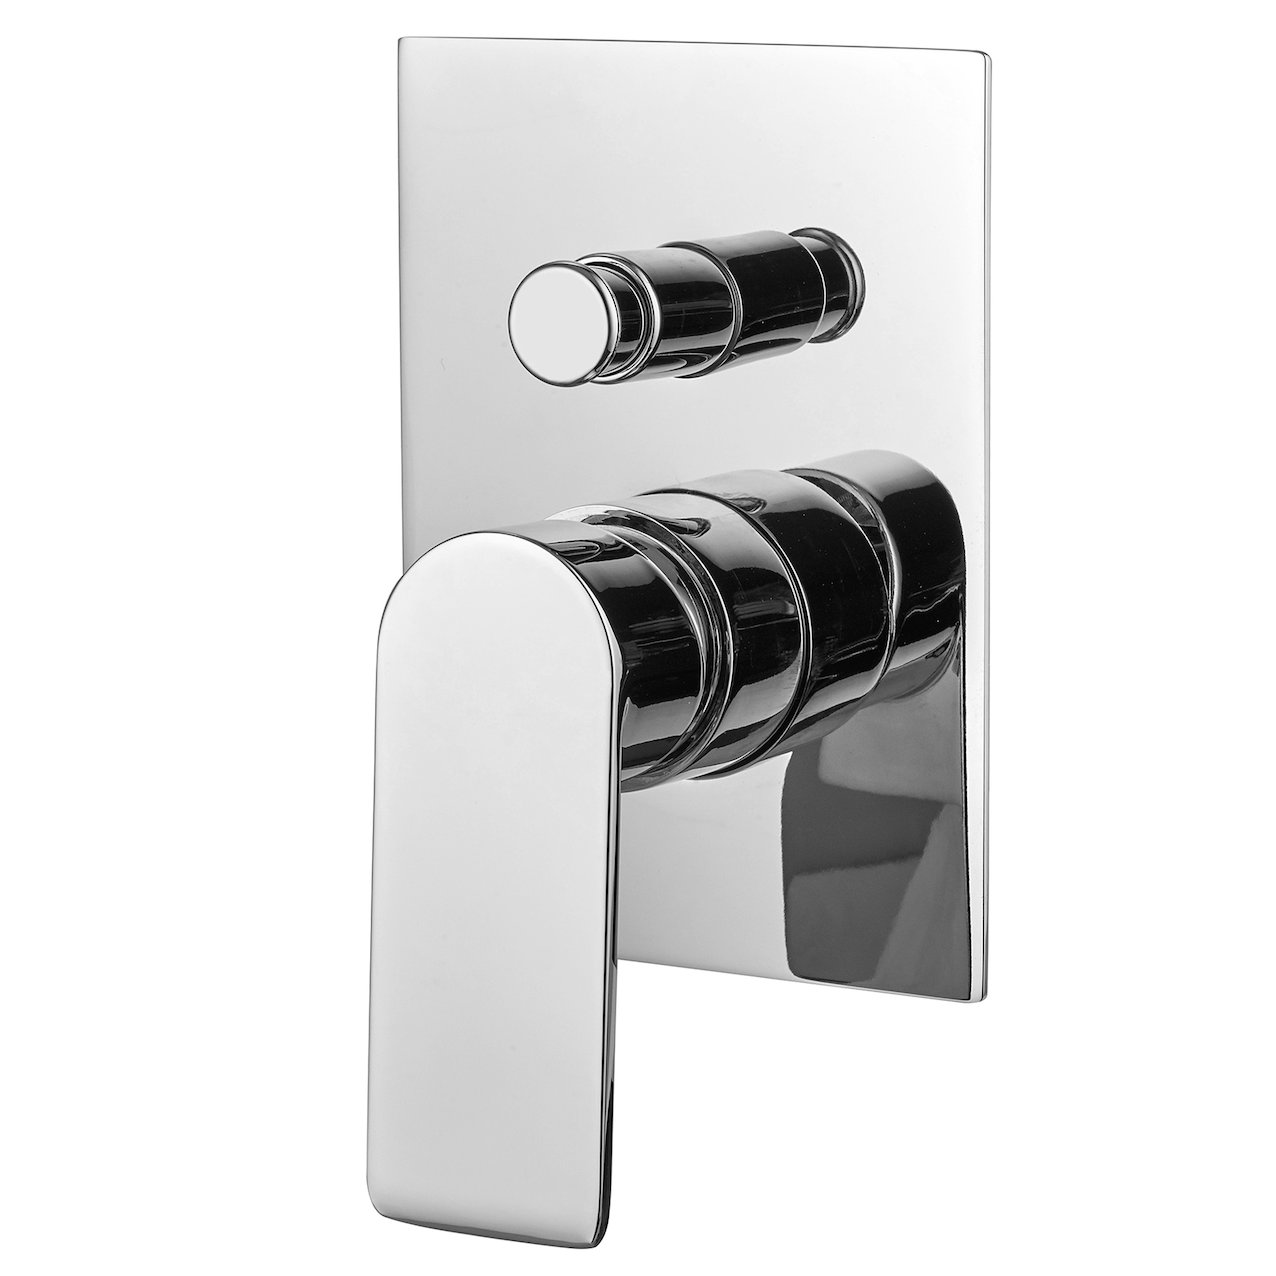 Concealed Shower Mixer Magica with Diverter